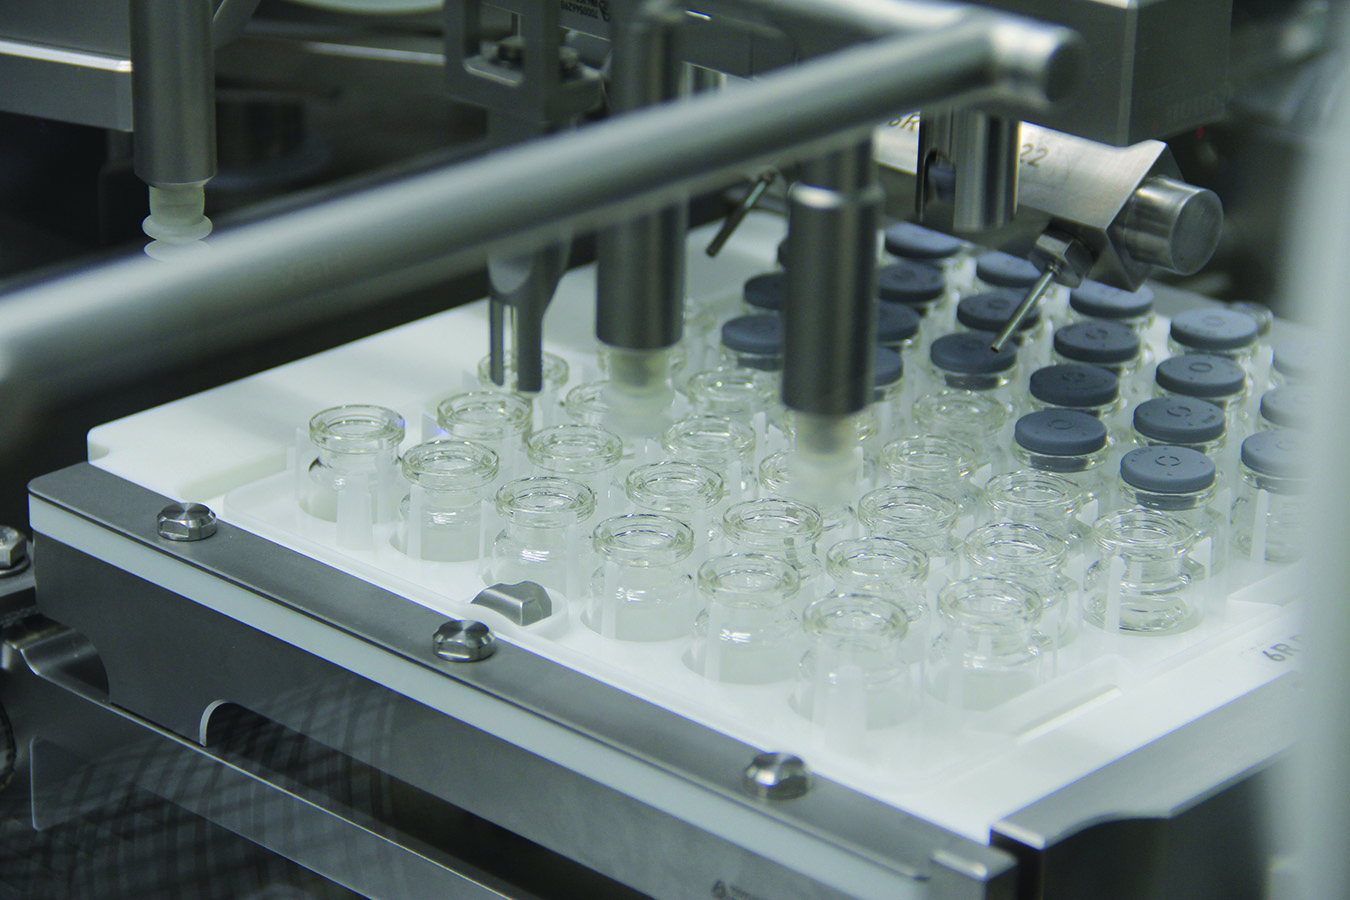 Critical Considerations for Fill–Finish Manufacturing: Demand to Increase  Speed and Flexibility While Maintaining Sterility Spurs Adoption of Novel  Technologies - BioProcess InternationalBioProcess International